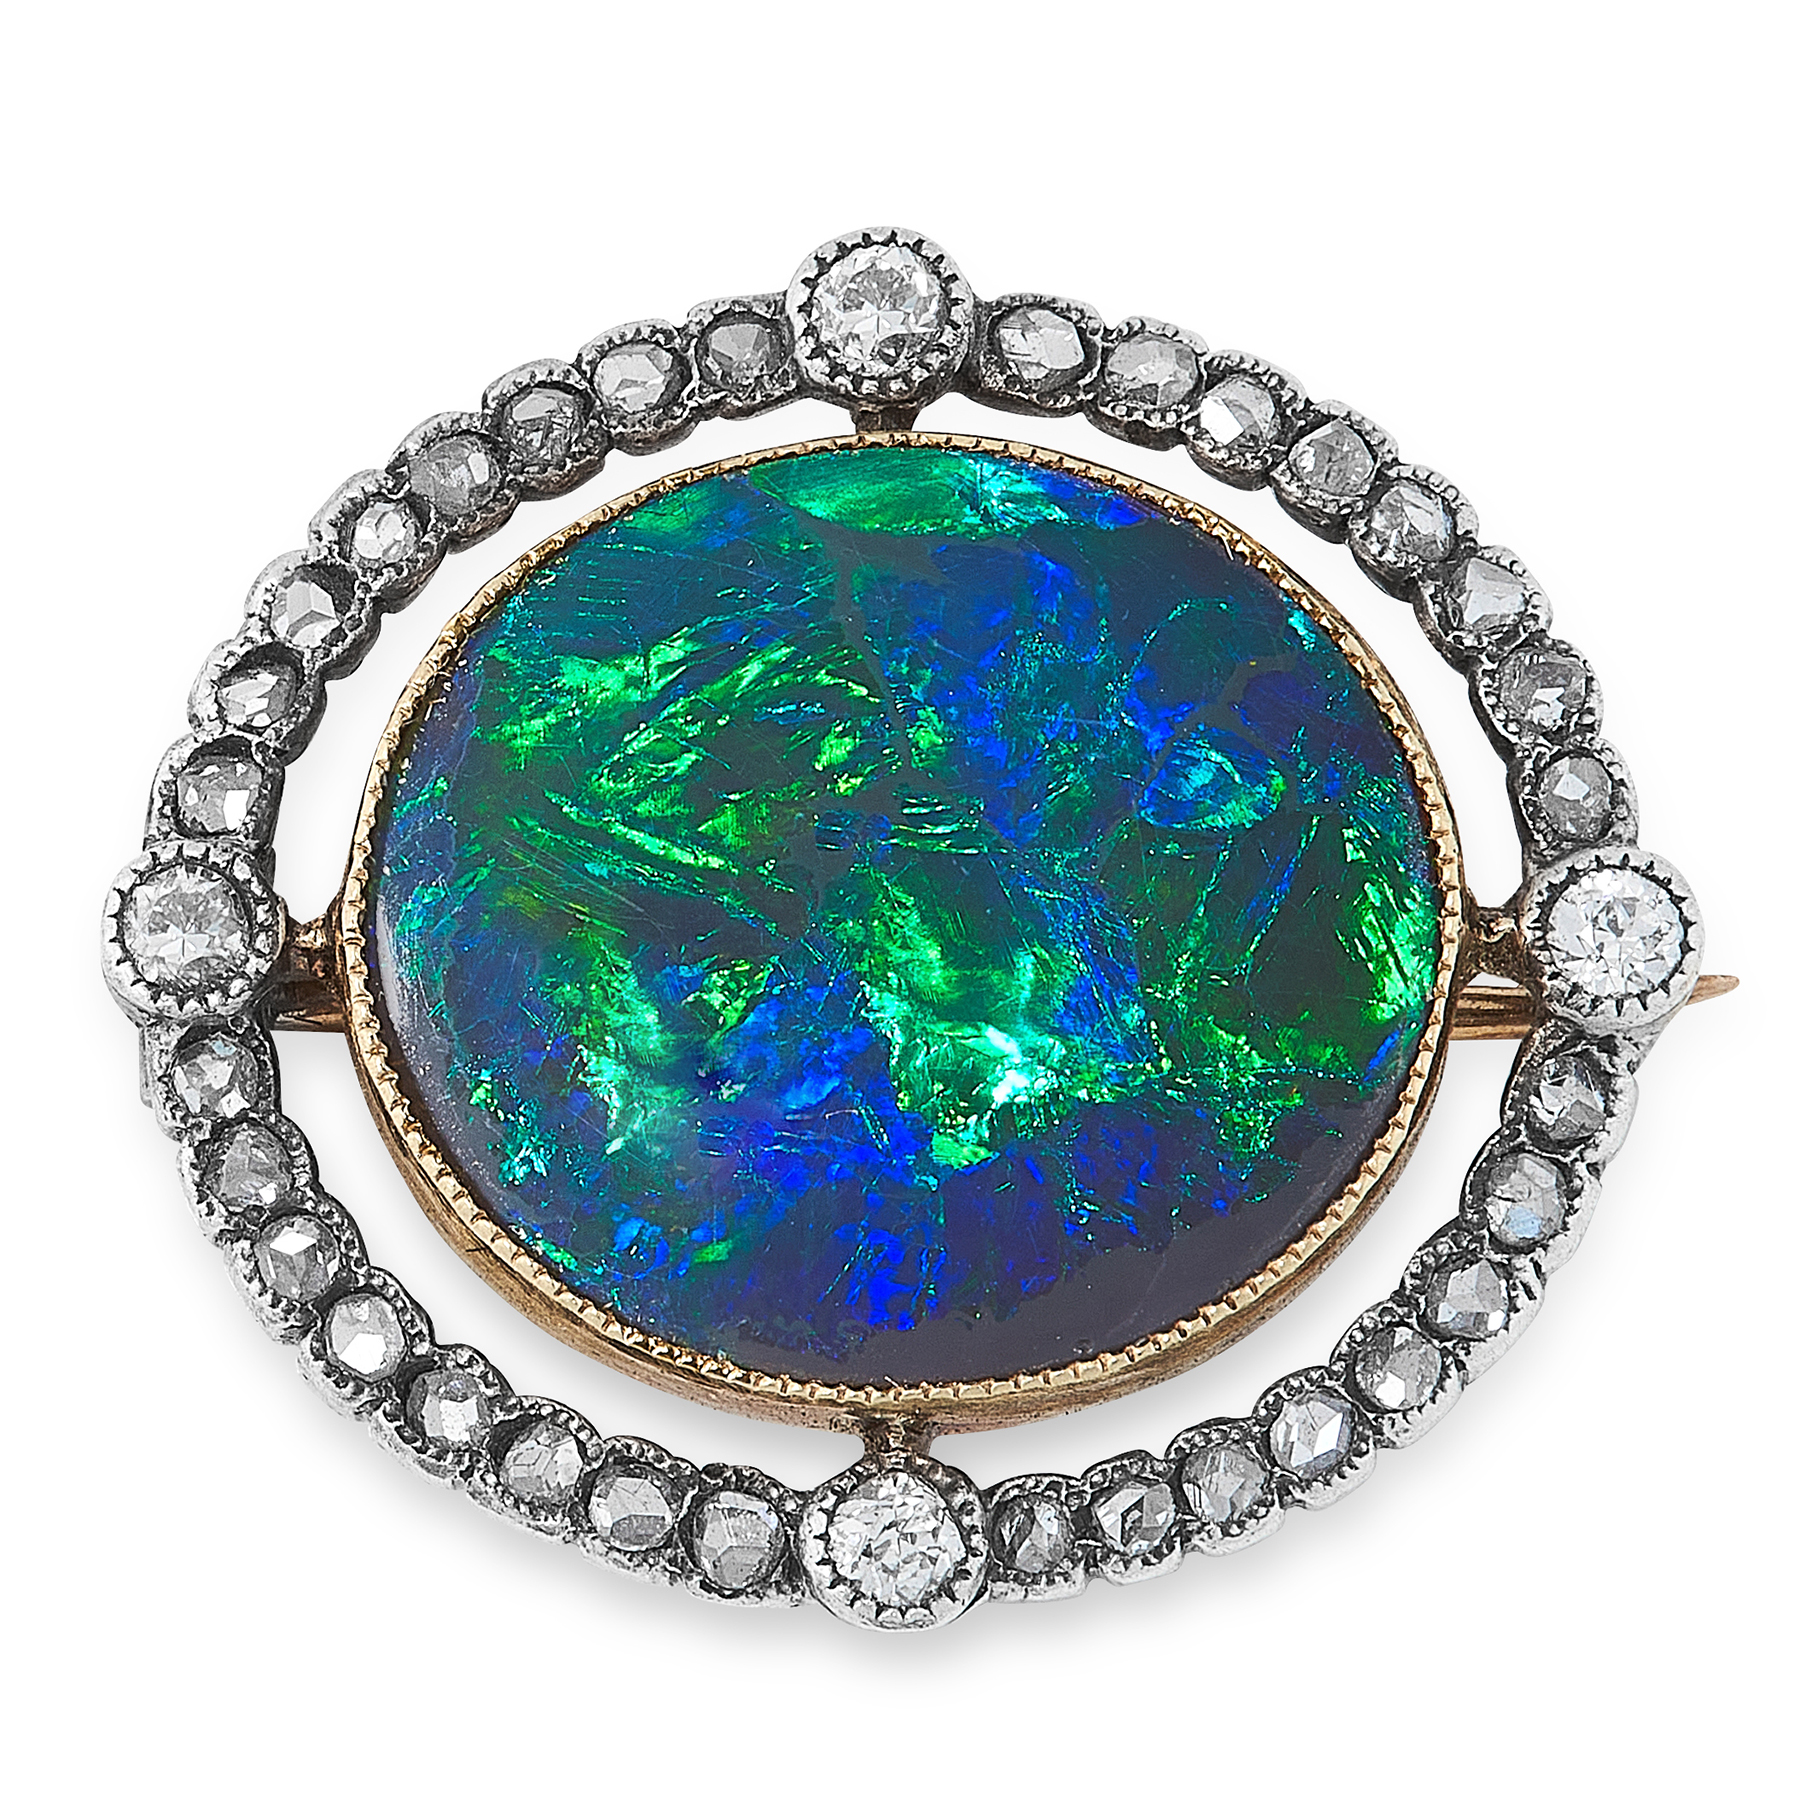 Lot 59 - A BLACK OPAL AND DIAMOND BROOCH, CIRCA 1900 in yellow gold and silver, set with an oval cabochon